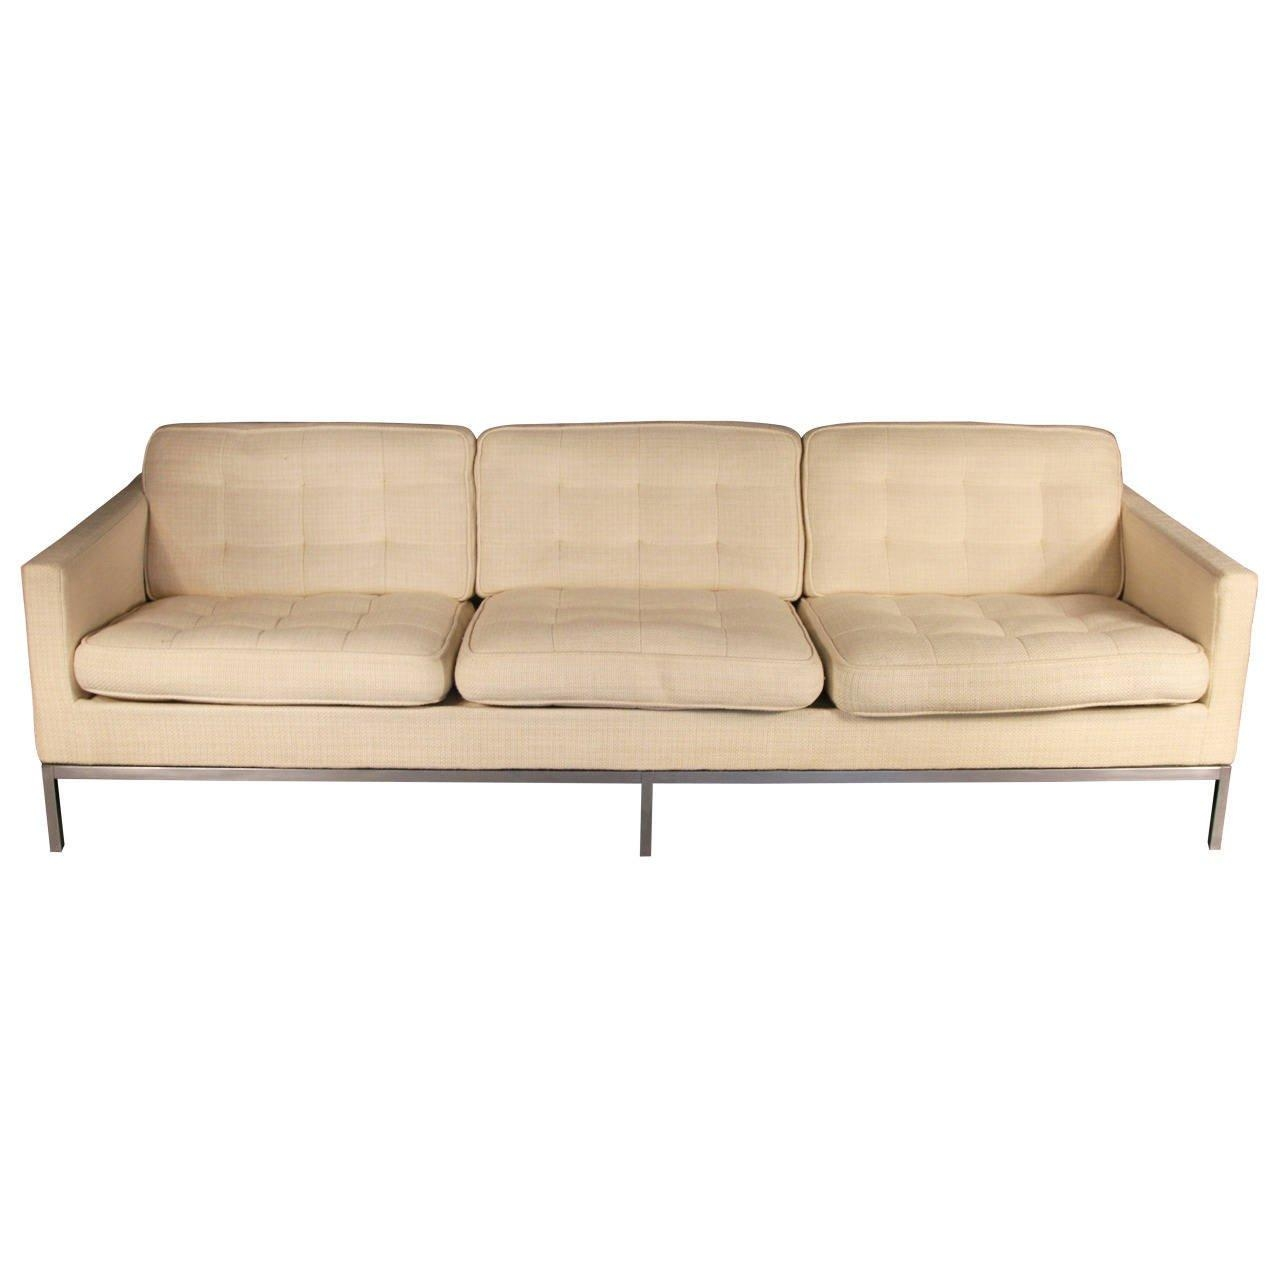 Florence Knoll Sofas – 54 For Sale At 1Stdibs Within Florence Large Sofas (View 15 of 20)